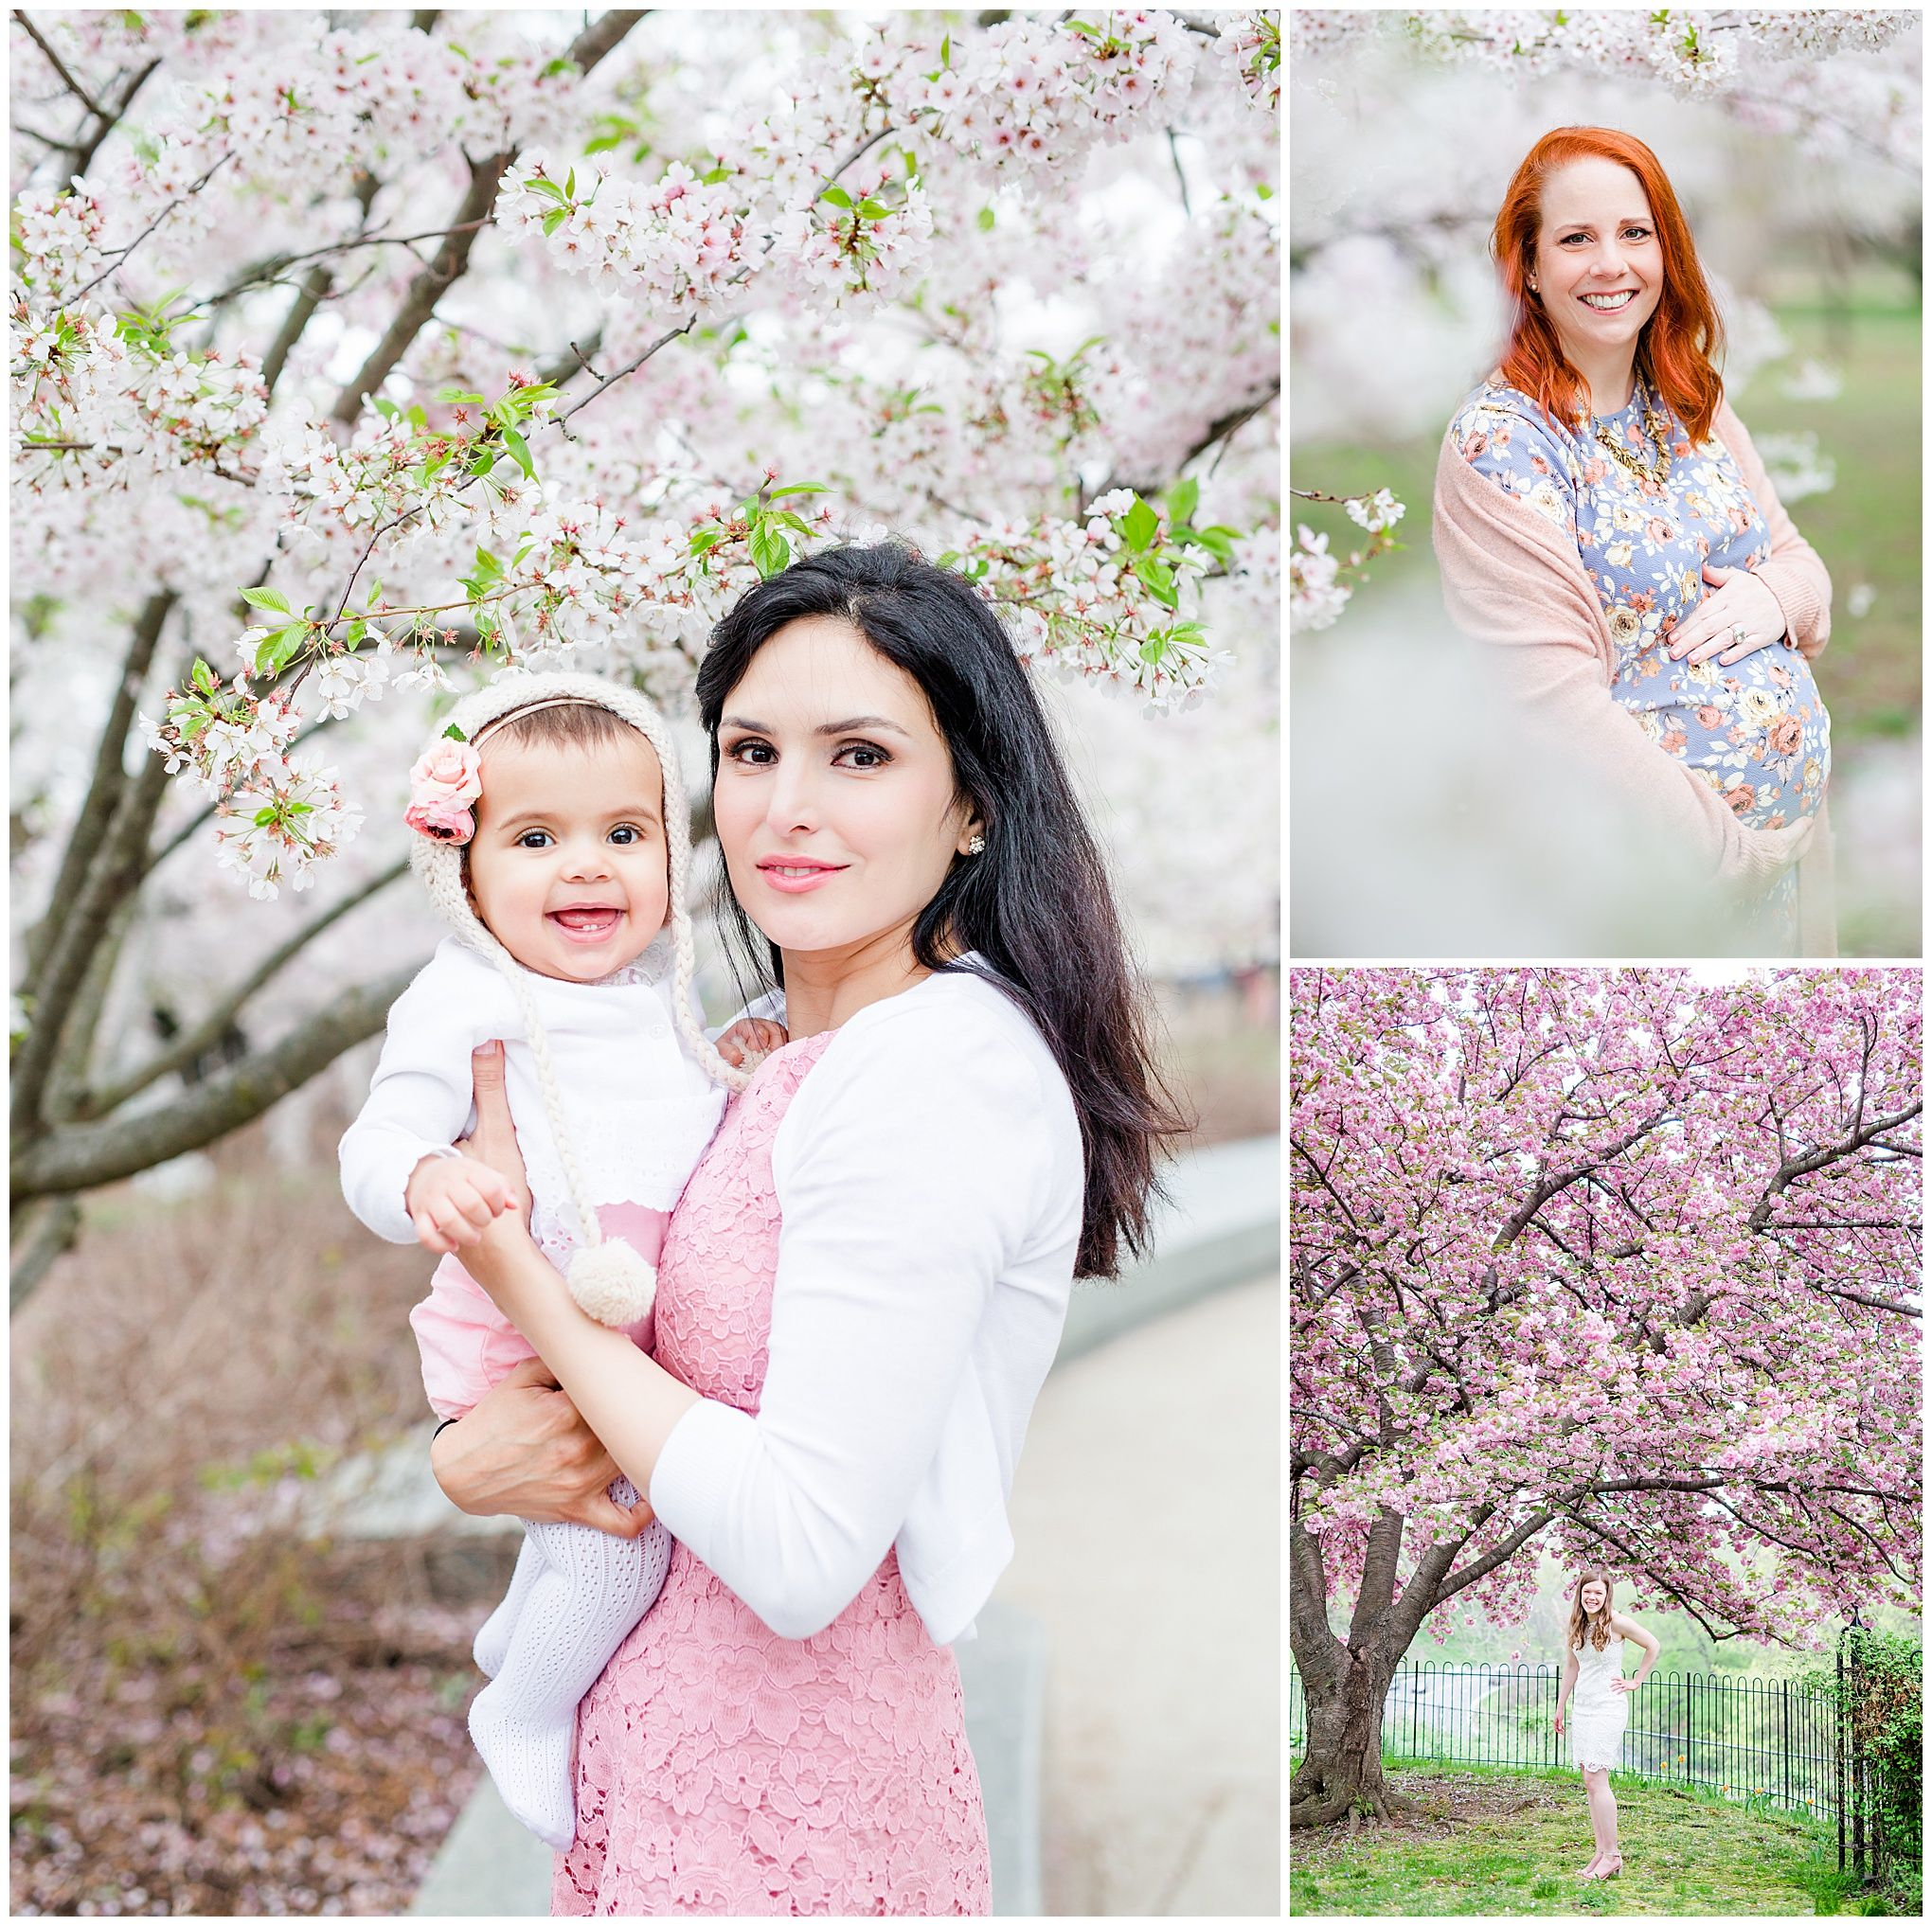 Cherry Blossoms Photo Shoot Outfit Ideas Showit Blog Photoshoot Outfits Photoshoot Spring Portraits